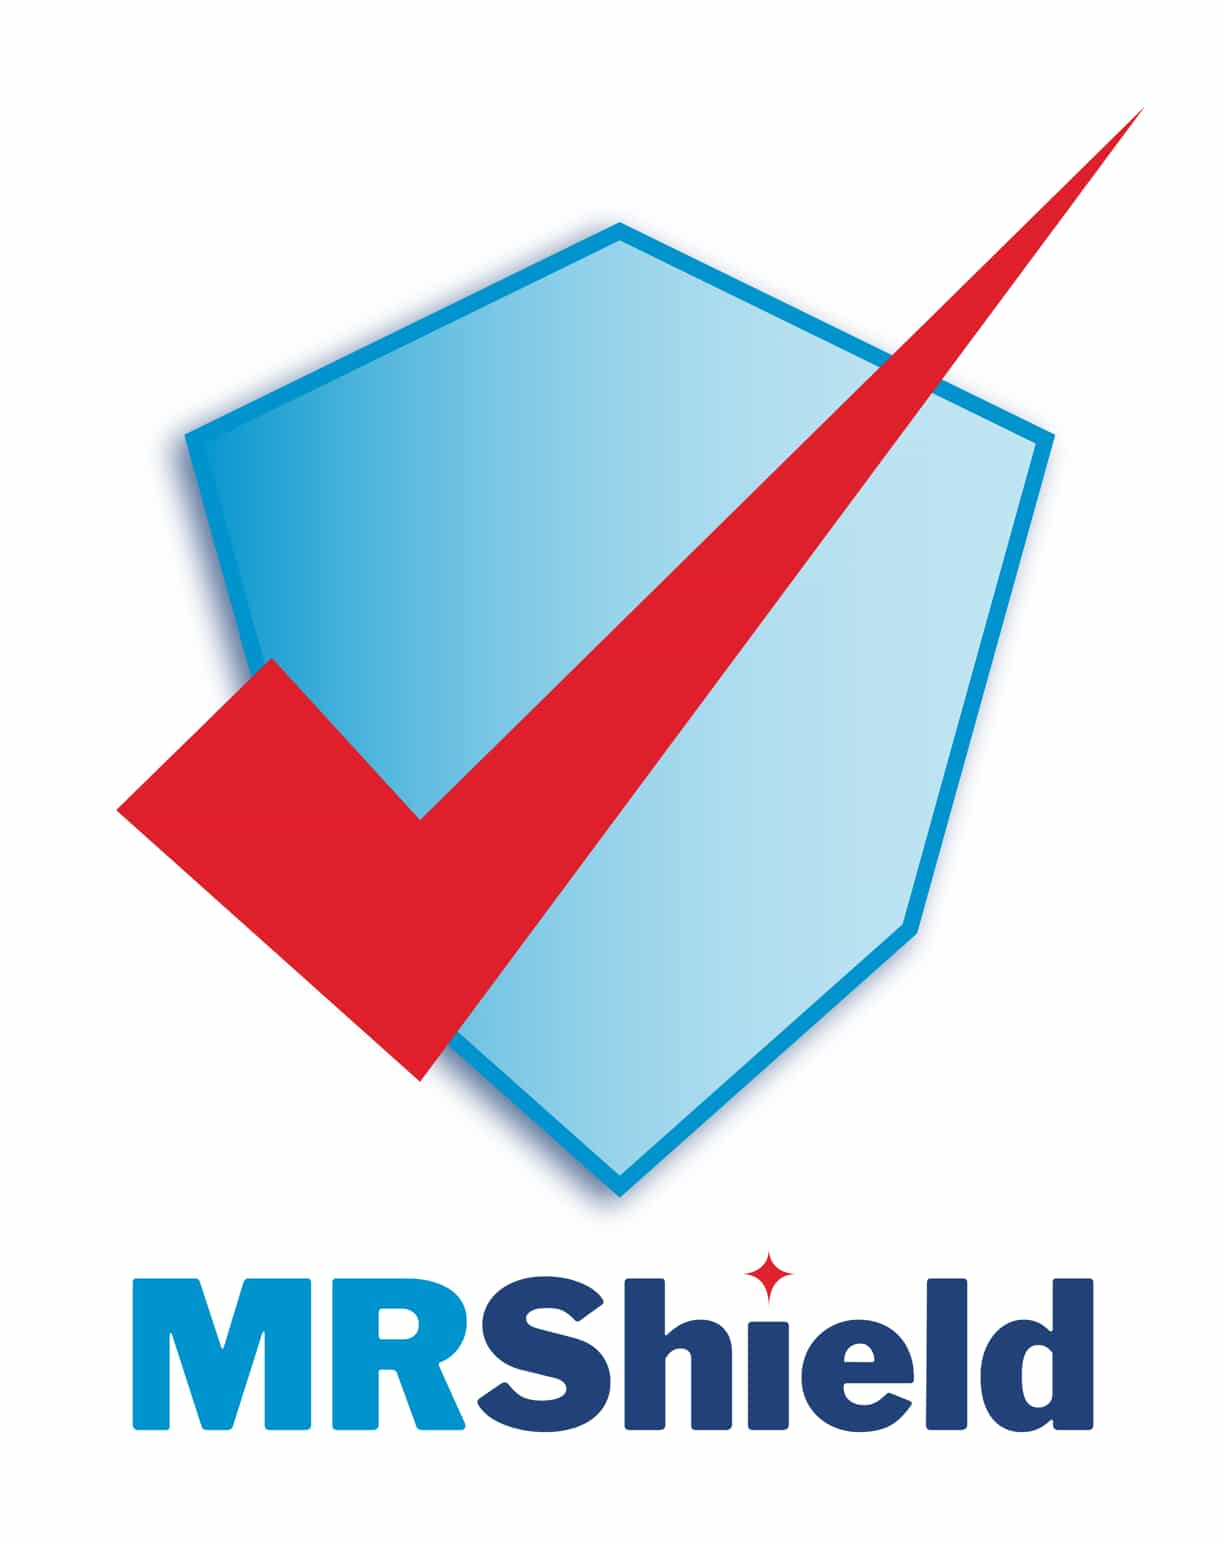 MR Shield